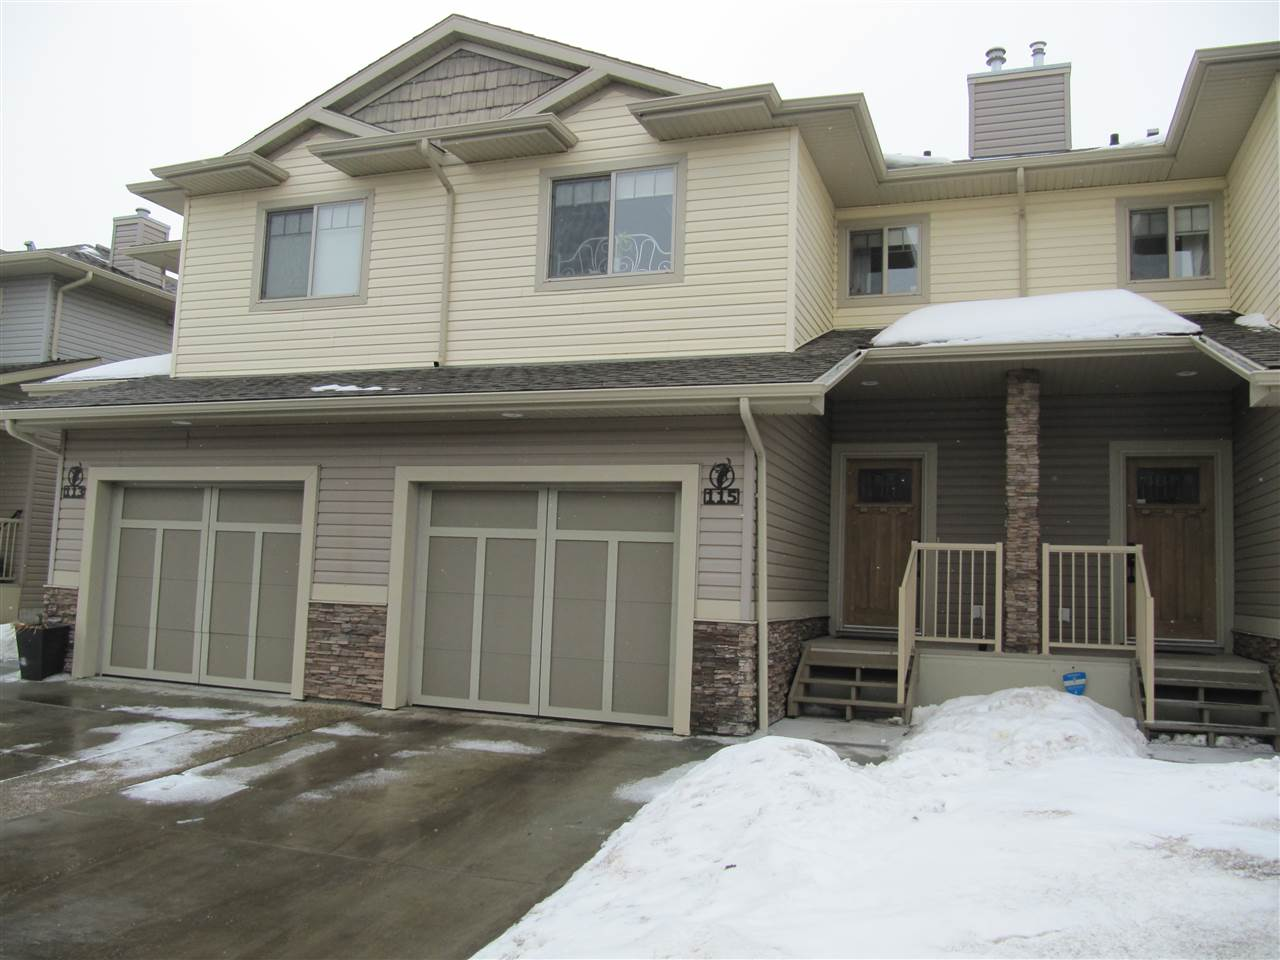 WOW!  CHECK THIS OUT!! YOUR PERFECT STARTER HOME! 1,147 sq ft, 2-storey, townhouse has 3 BEDROOMS + 2.5 BATHS + ATTACHED SINGLE GARAGE! OPEN FLOOR PLAN! LAMINITE flooring throughout! The kitchen has STAINLESS STEEL APPLIANCES with beautiful espresso cabinets & GRANITE countertops with eating bar. A corner GAS FIREPLACE in the living room! Upstairs you?ll find a MASSIVE Master Bedroom with 4-piece ENSUITE + LARGE WALK-IN CLOSET. 2 large additional bedrooms, another 4-piece bath + LAUNDRY ROOM with storage! The basement is unfinished waiting for your personal touch. PETS ARE ALLOWED WITH BOARD APPROVAL. Steps to walking trails & parks. Close to schools, shopping, parks & Leduc Common! Quick access to QEII, 10 minutes to Airport, Nisku & Premium Outlet Mall and new Costco!